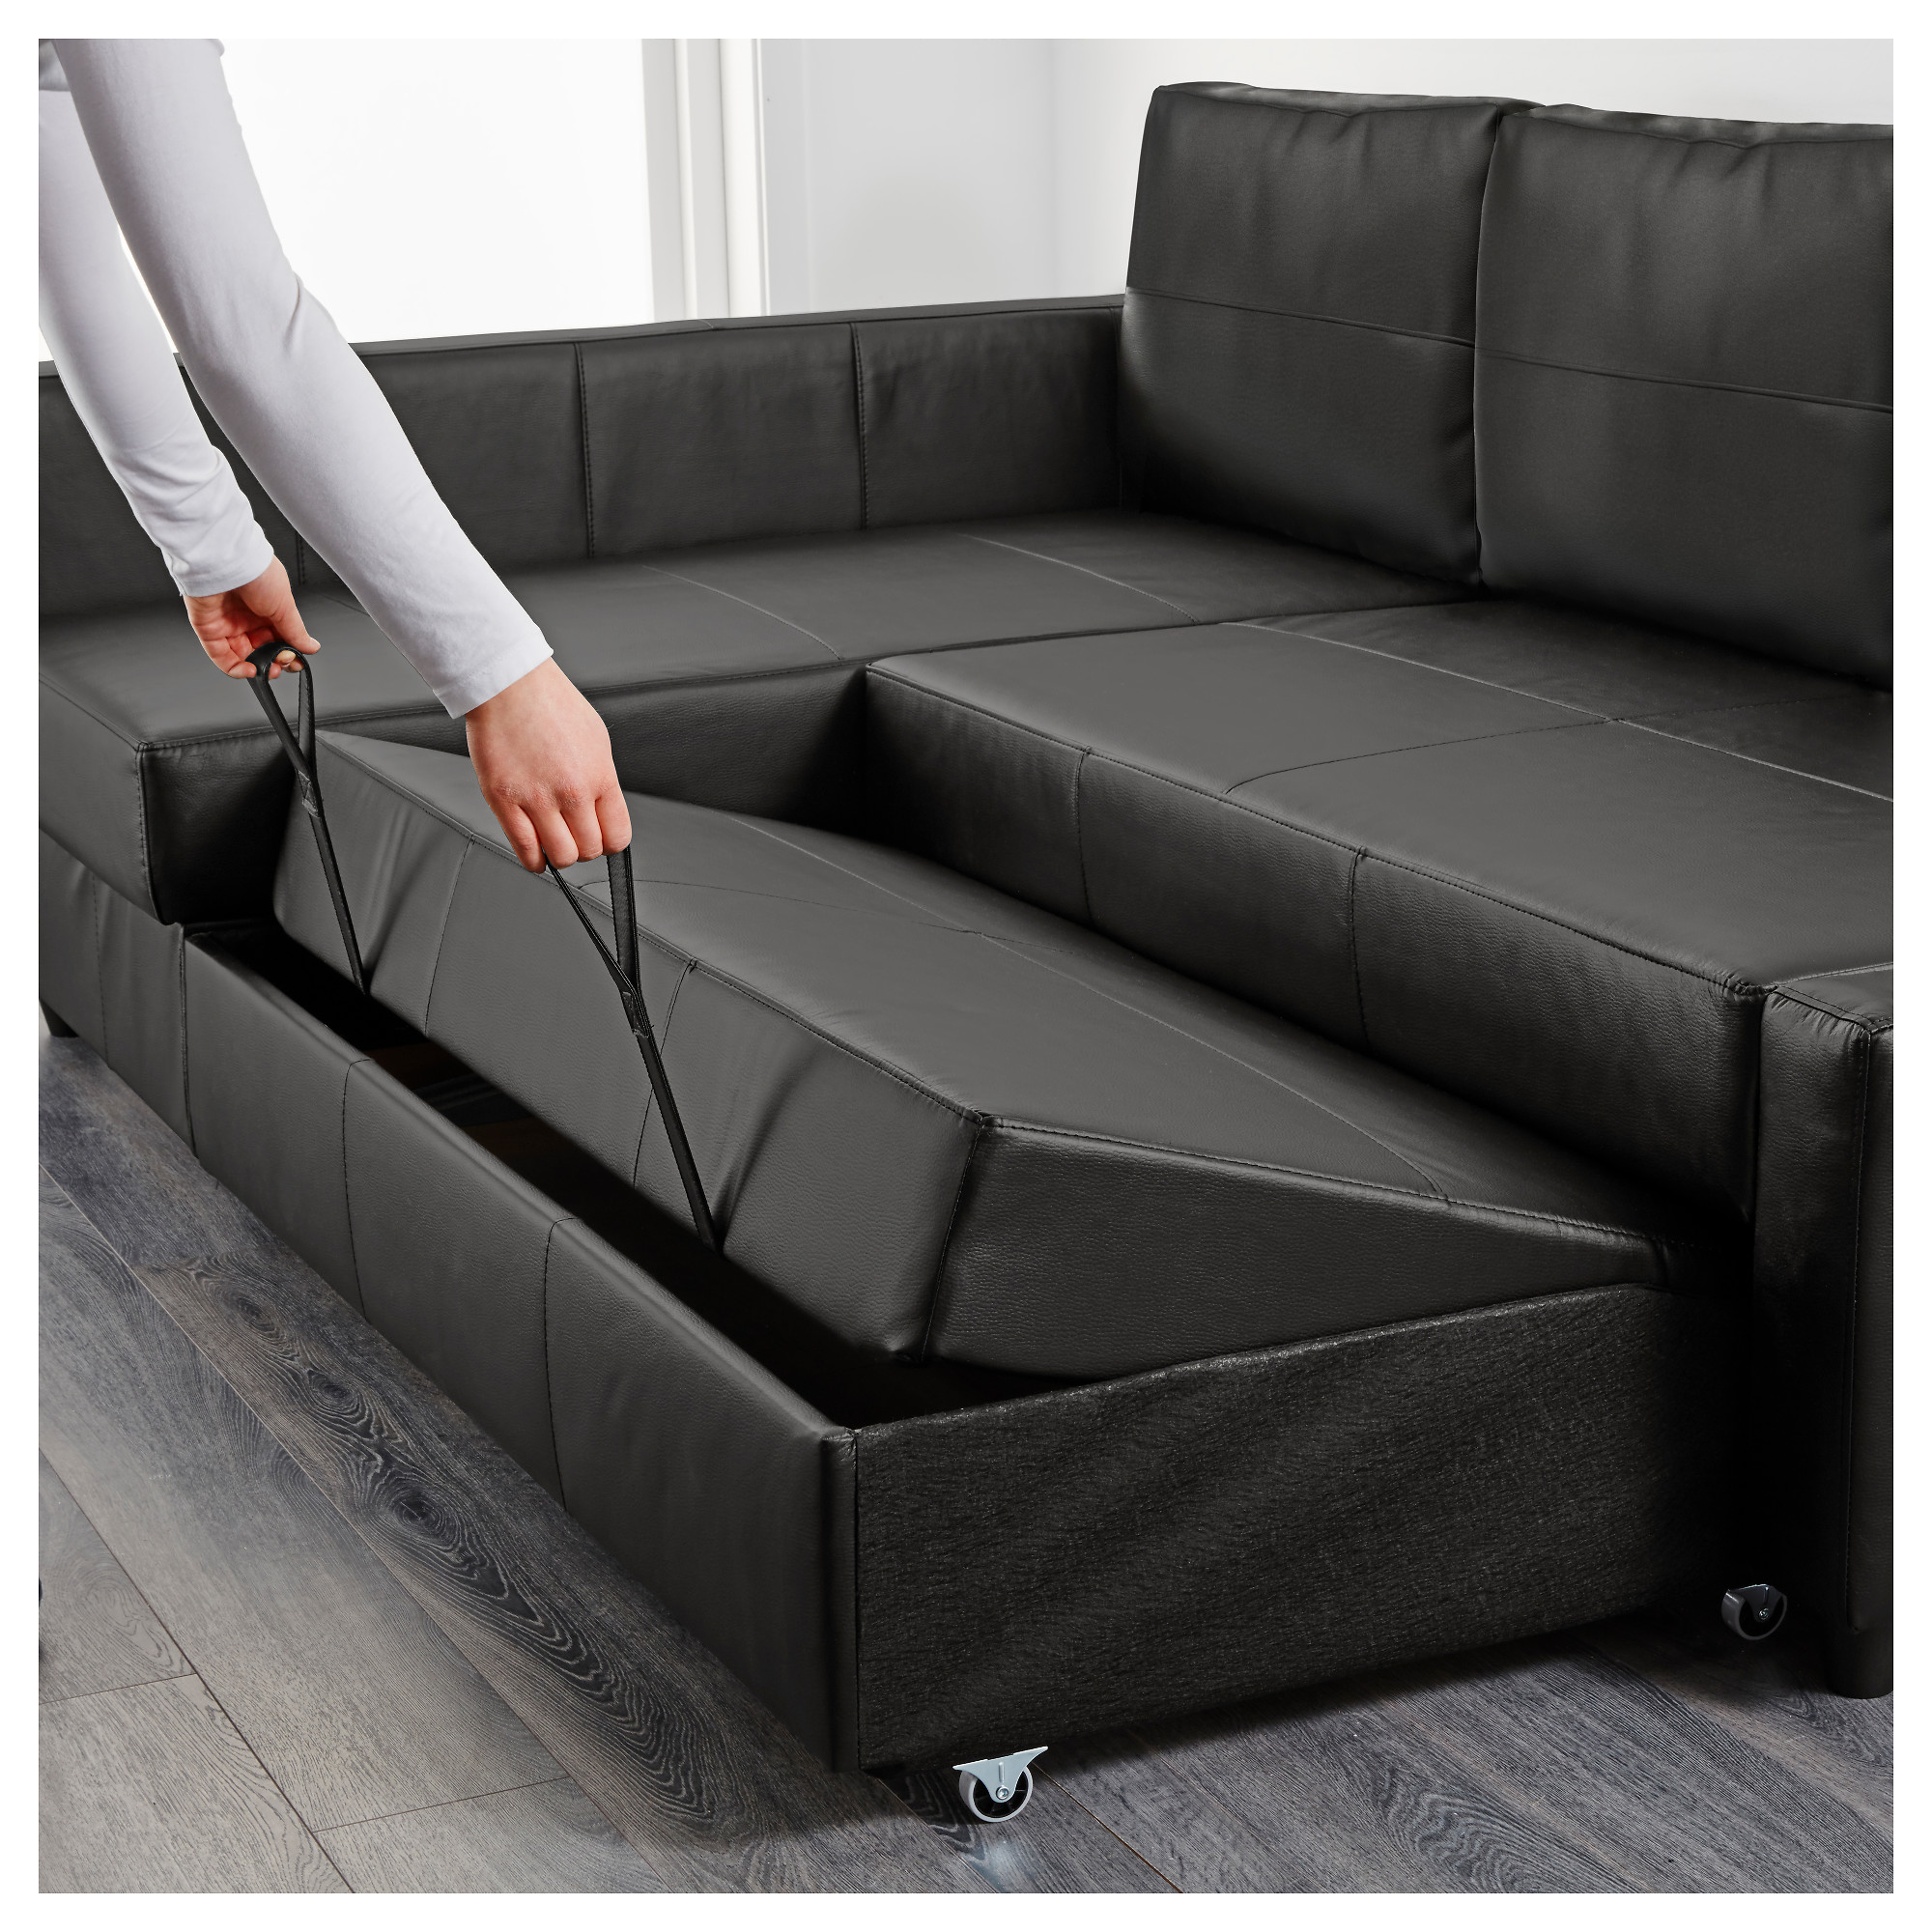 FRIHETEN Sleeper sectional3 seat wstorage Skiftebo dark gray